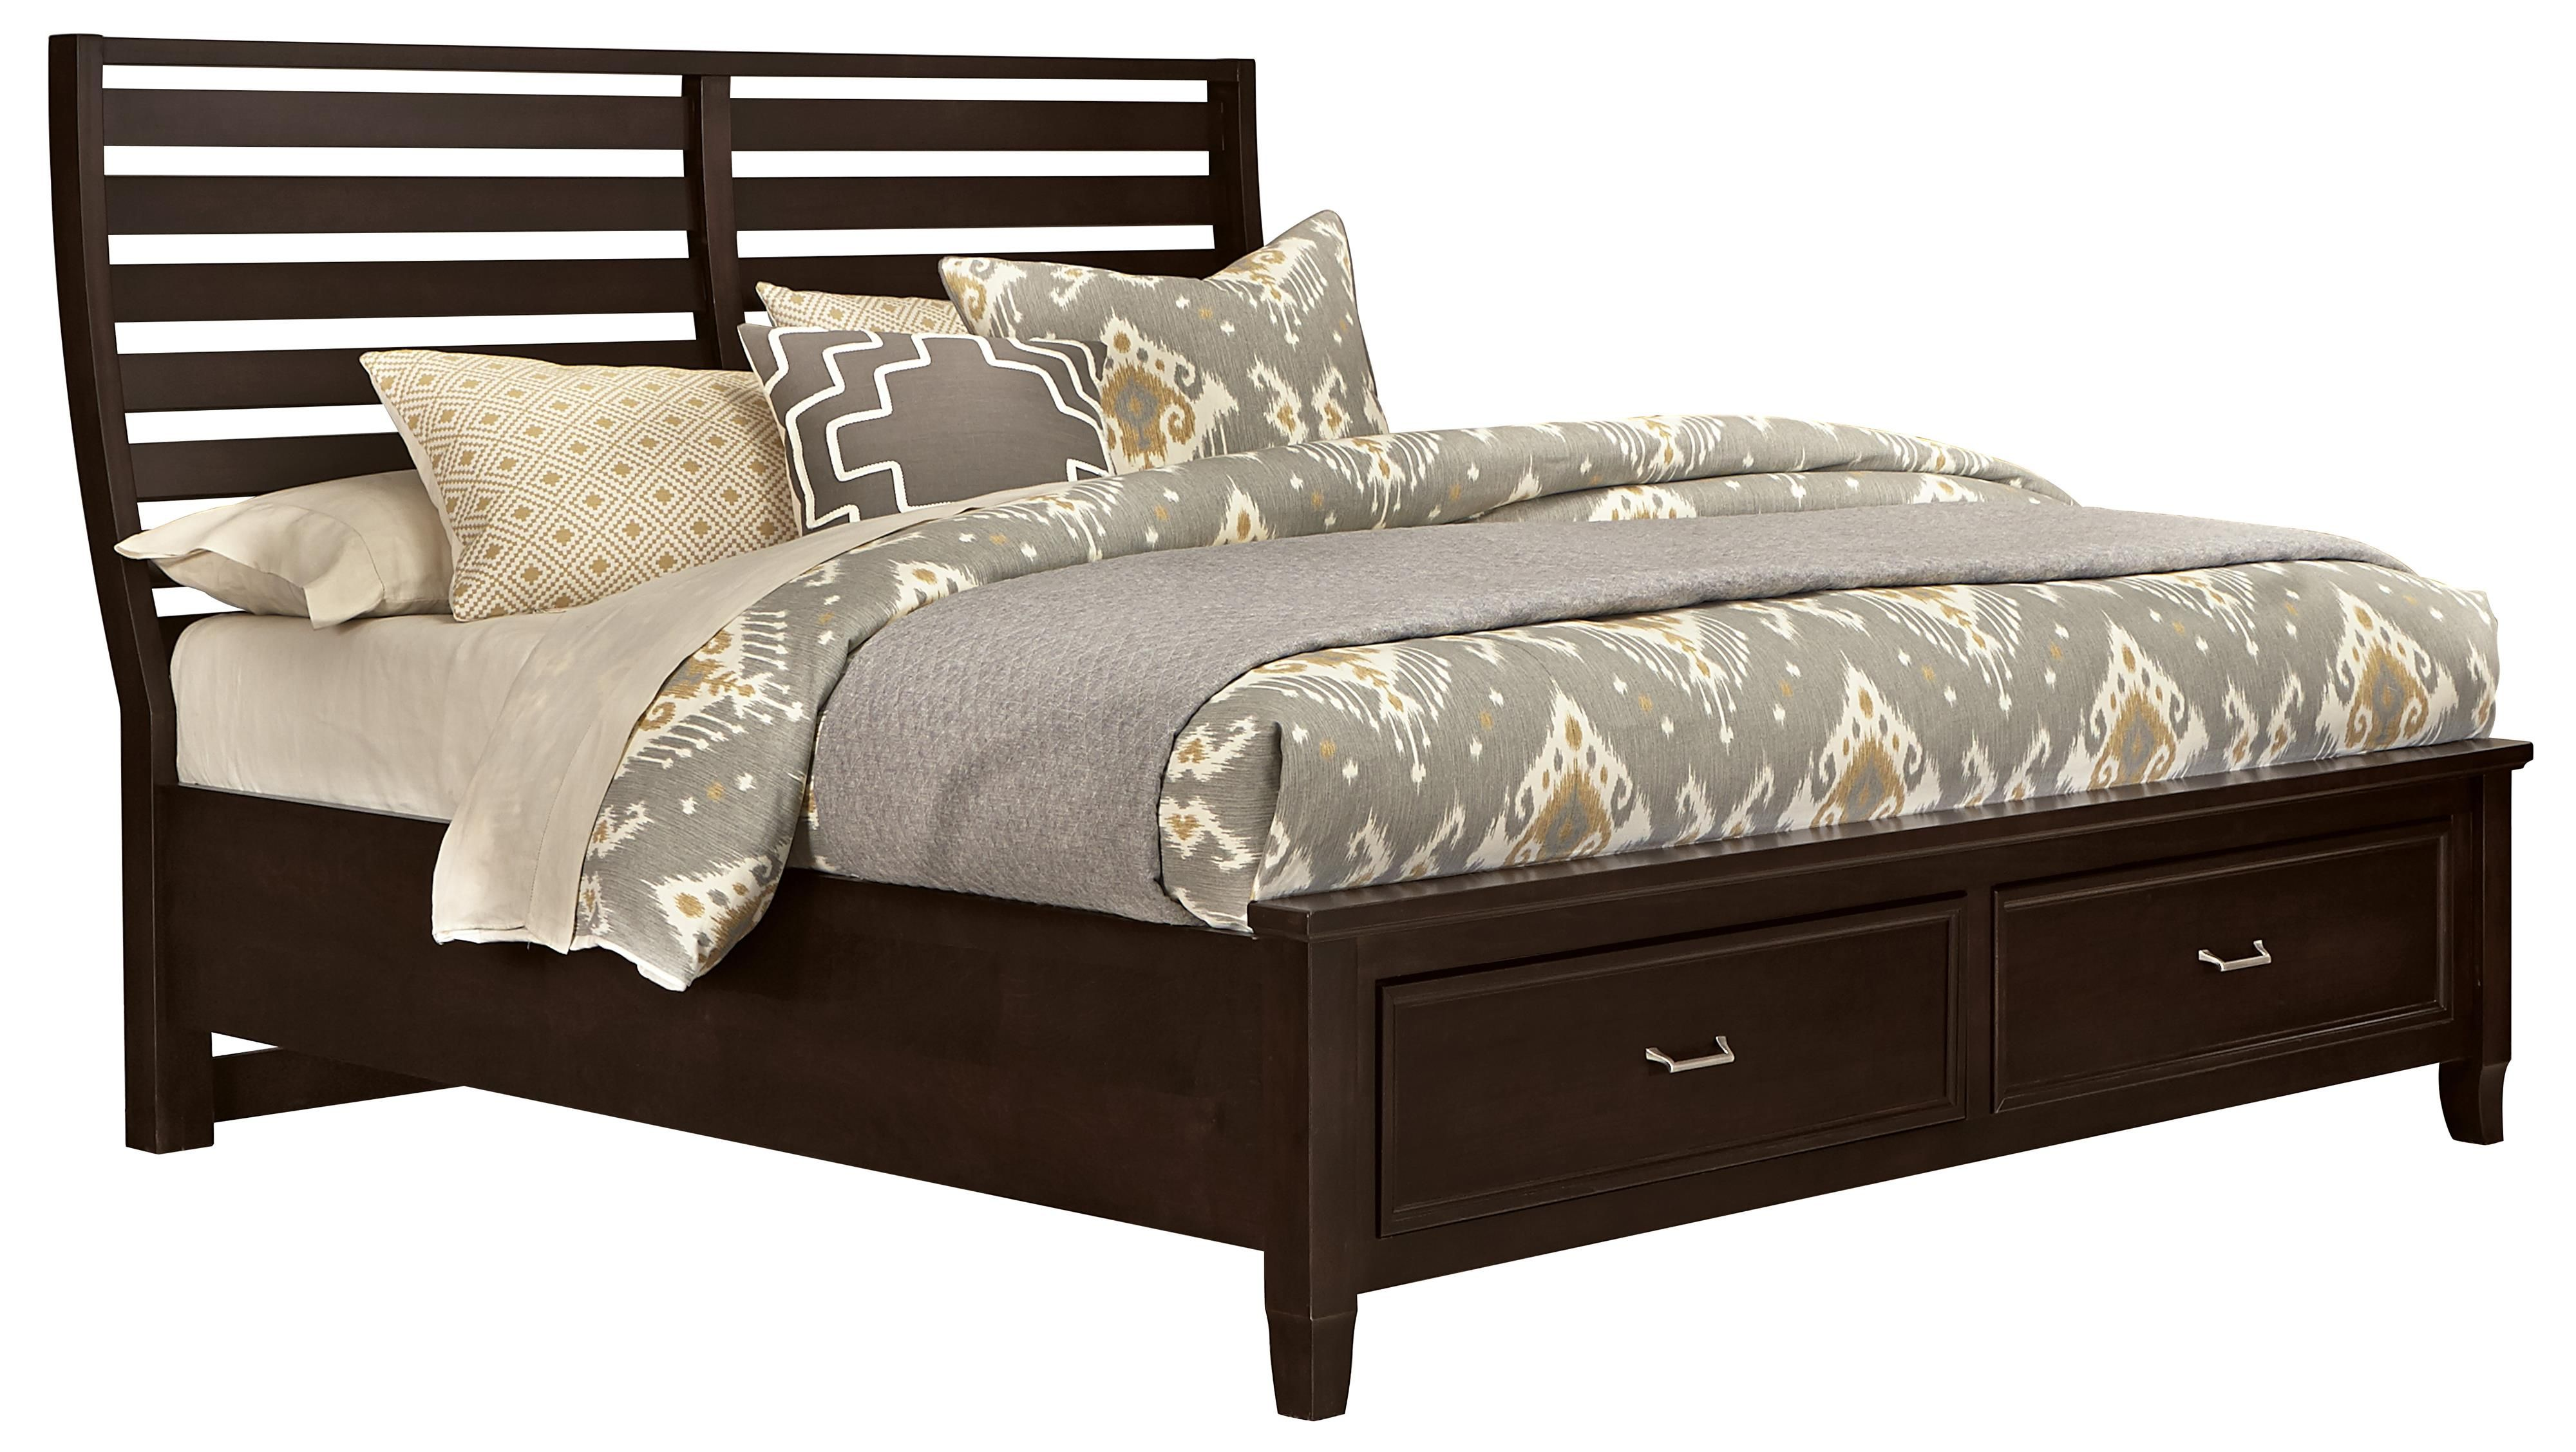 Commentary Queen Benchback Bed With Storage Footboard By Vaughan Bassett At Dunk Bright Furniture Storage Footboard Bed Bed Storage